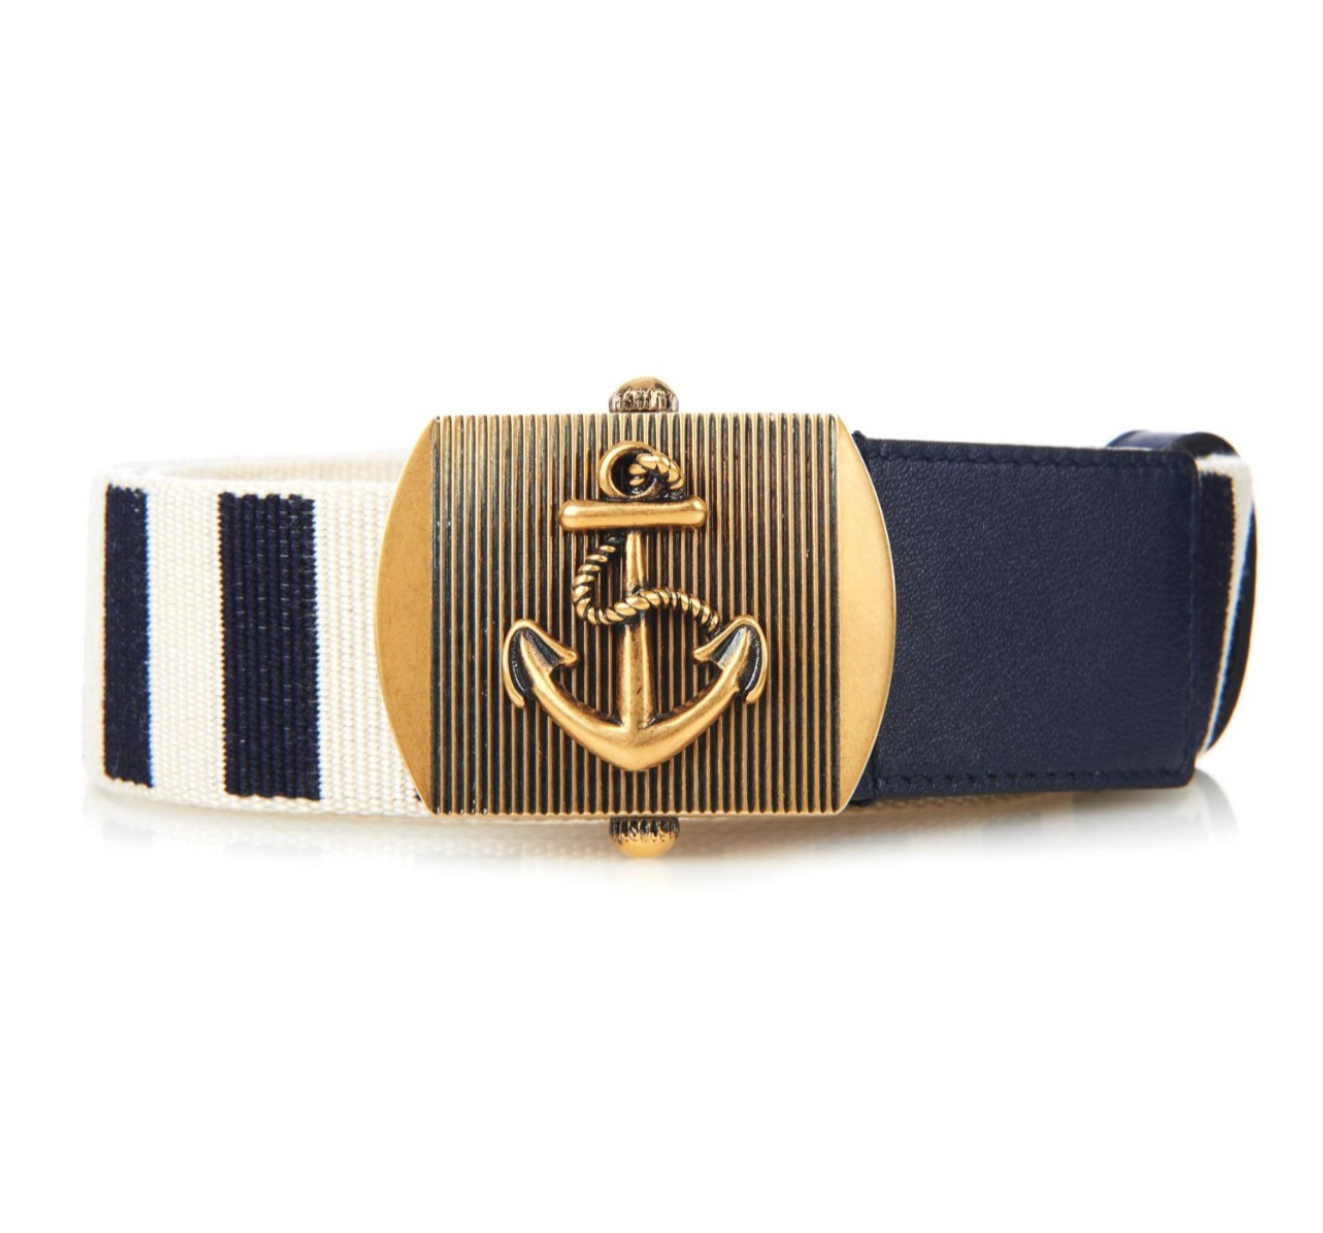 Gucci Anchor Buckle Belt Striped Navy Blue/White